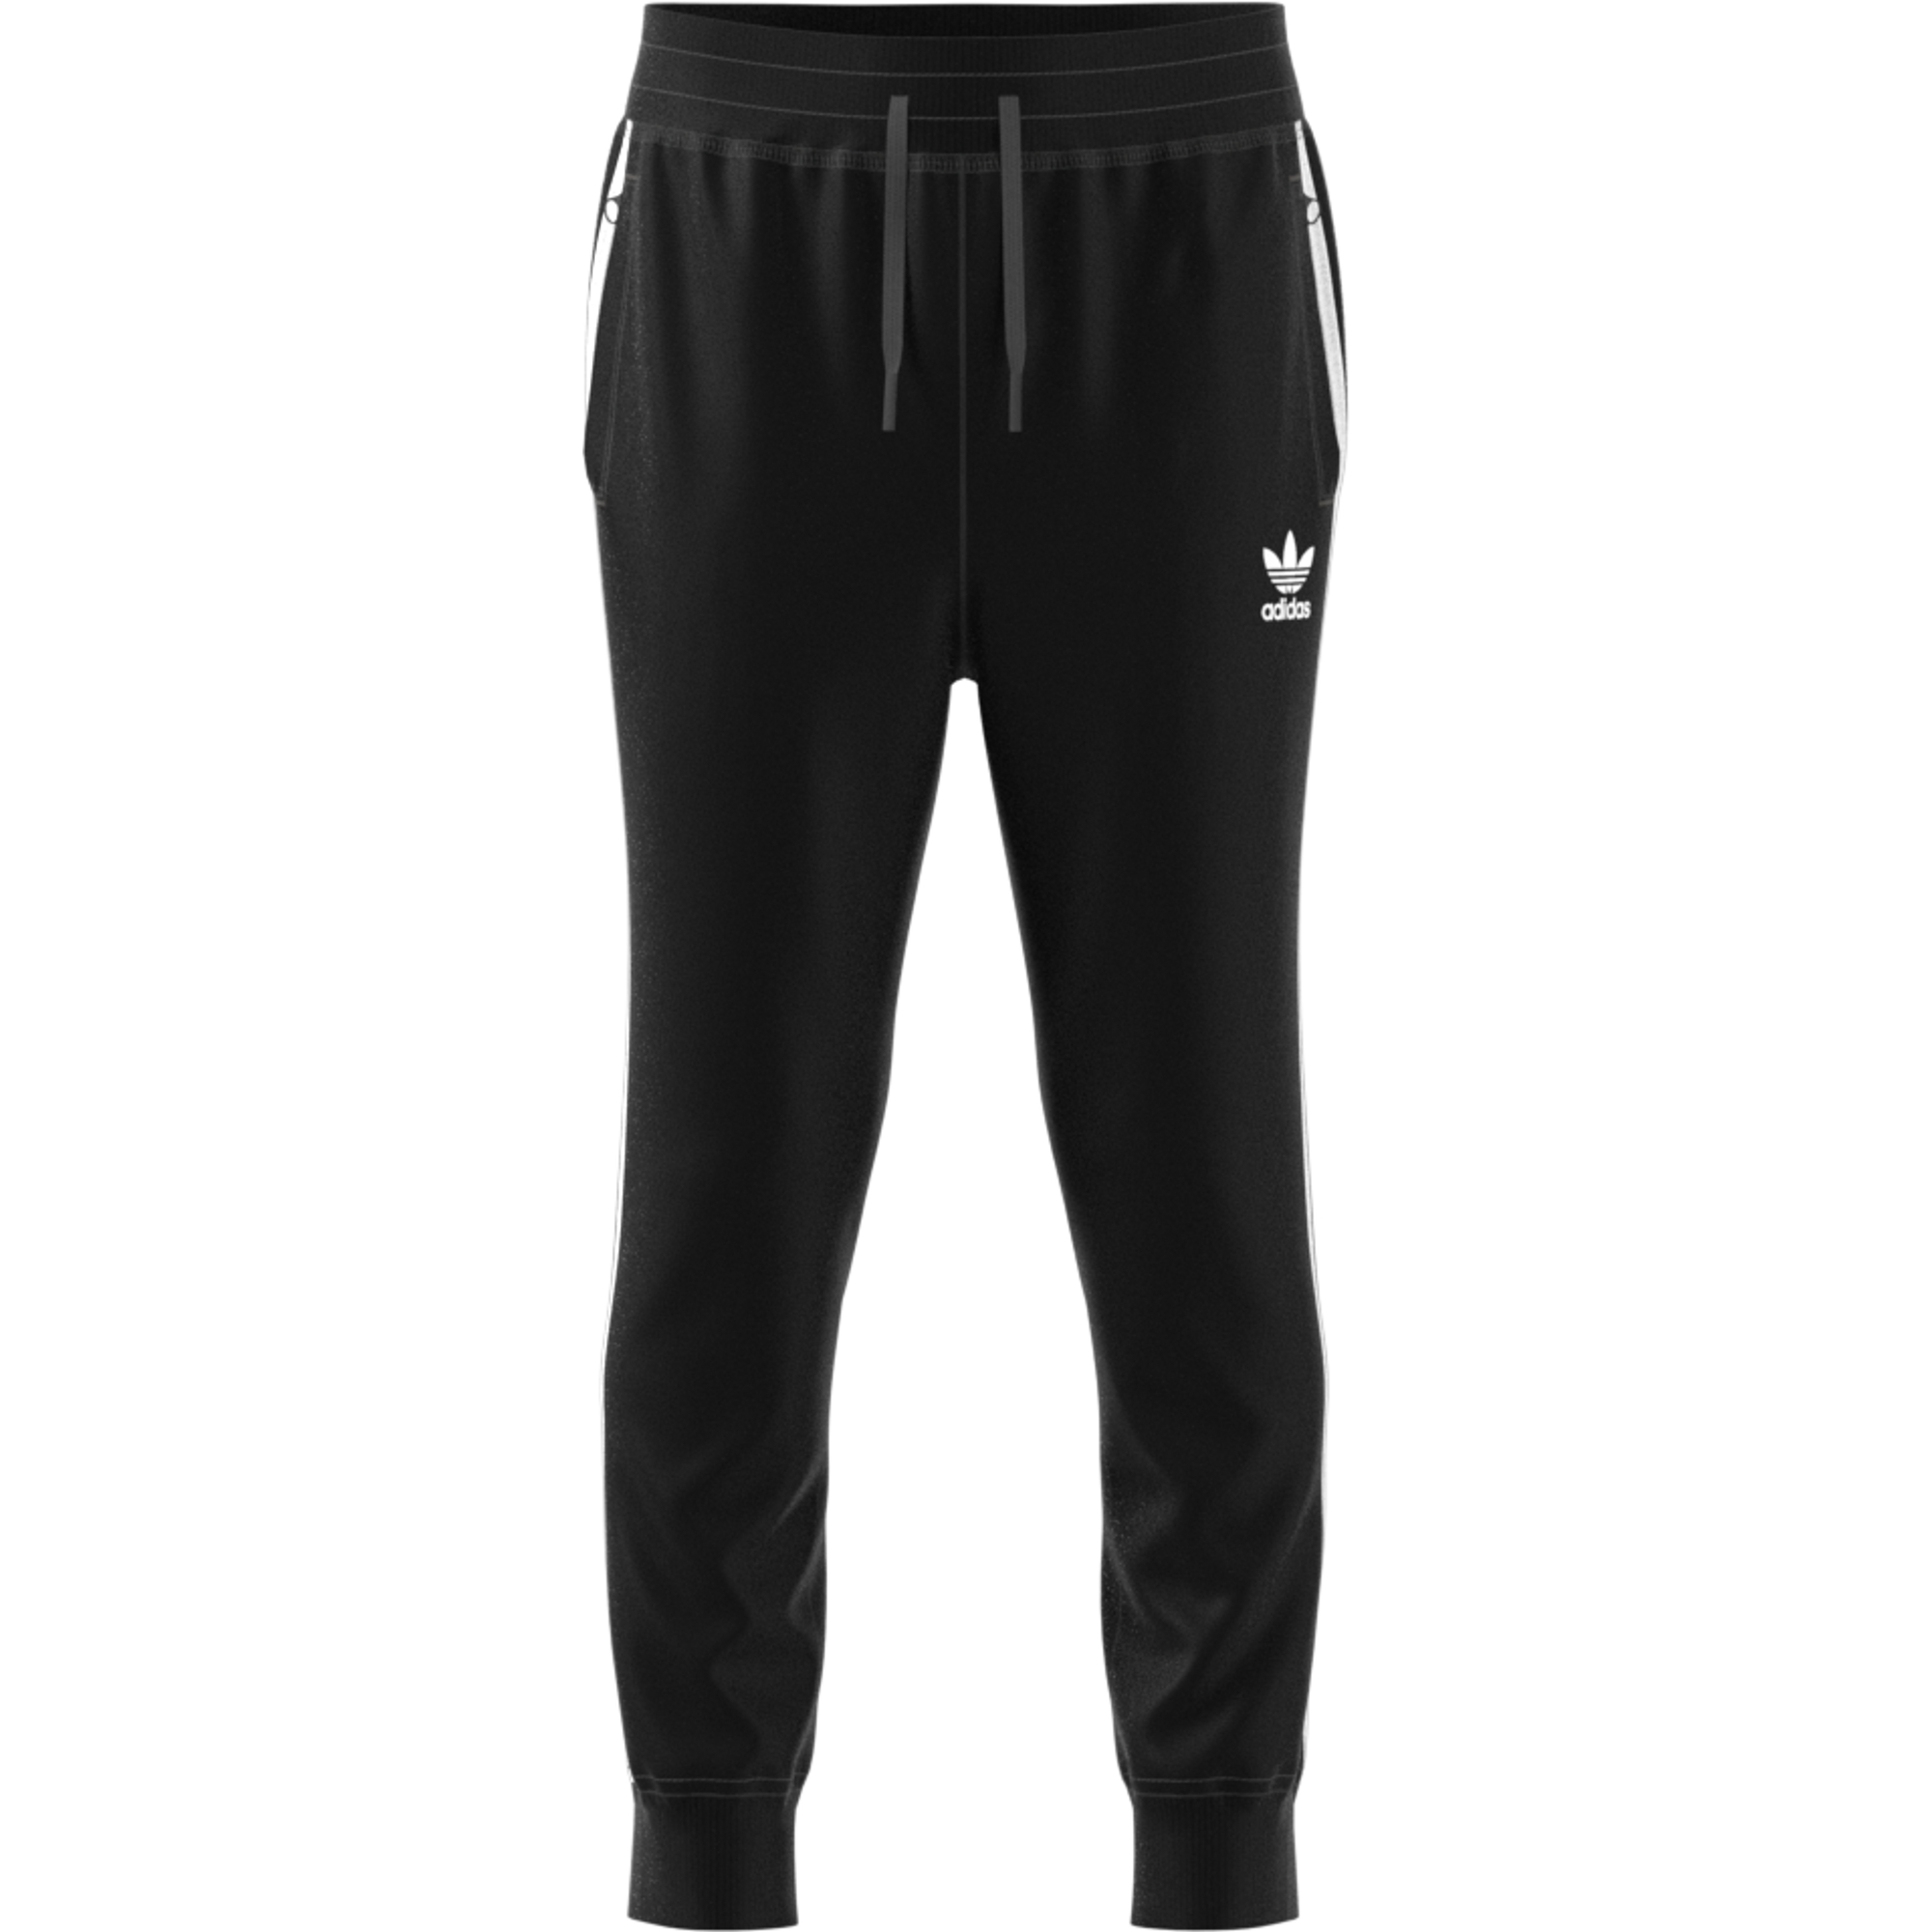 Adidas Junior Trefoil Pants Black / White